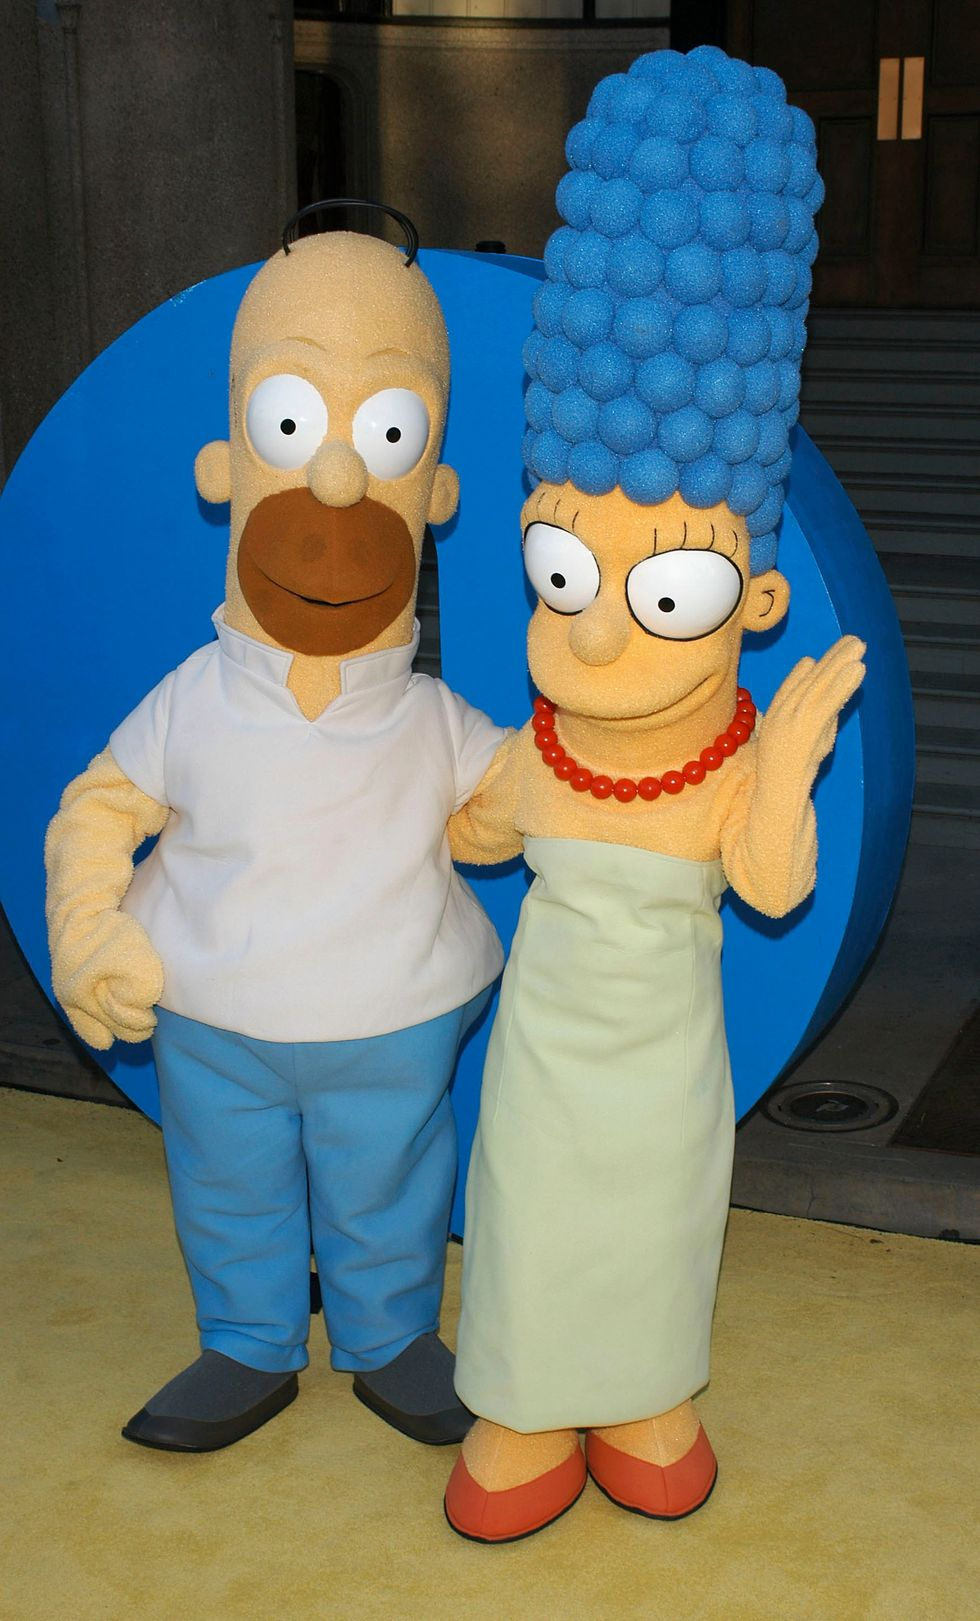 Marge ha tradito Homer: anche i Simpson vittime del dating online